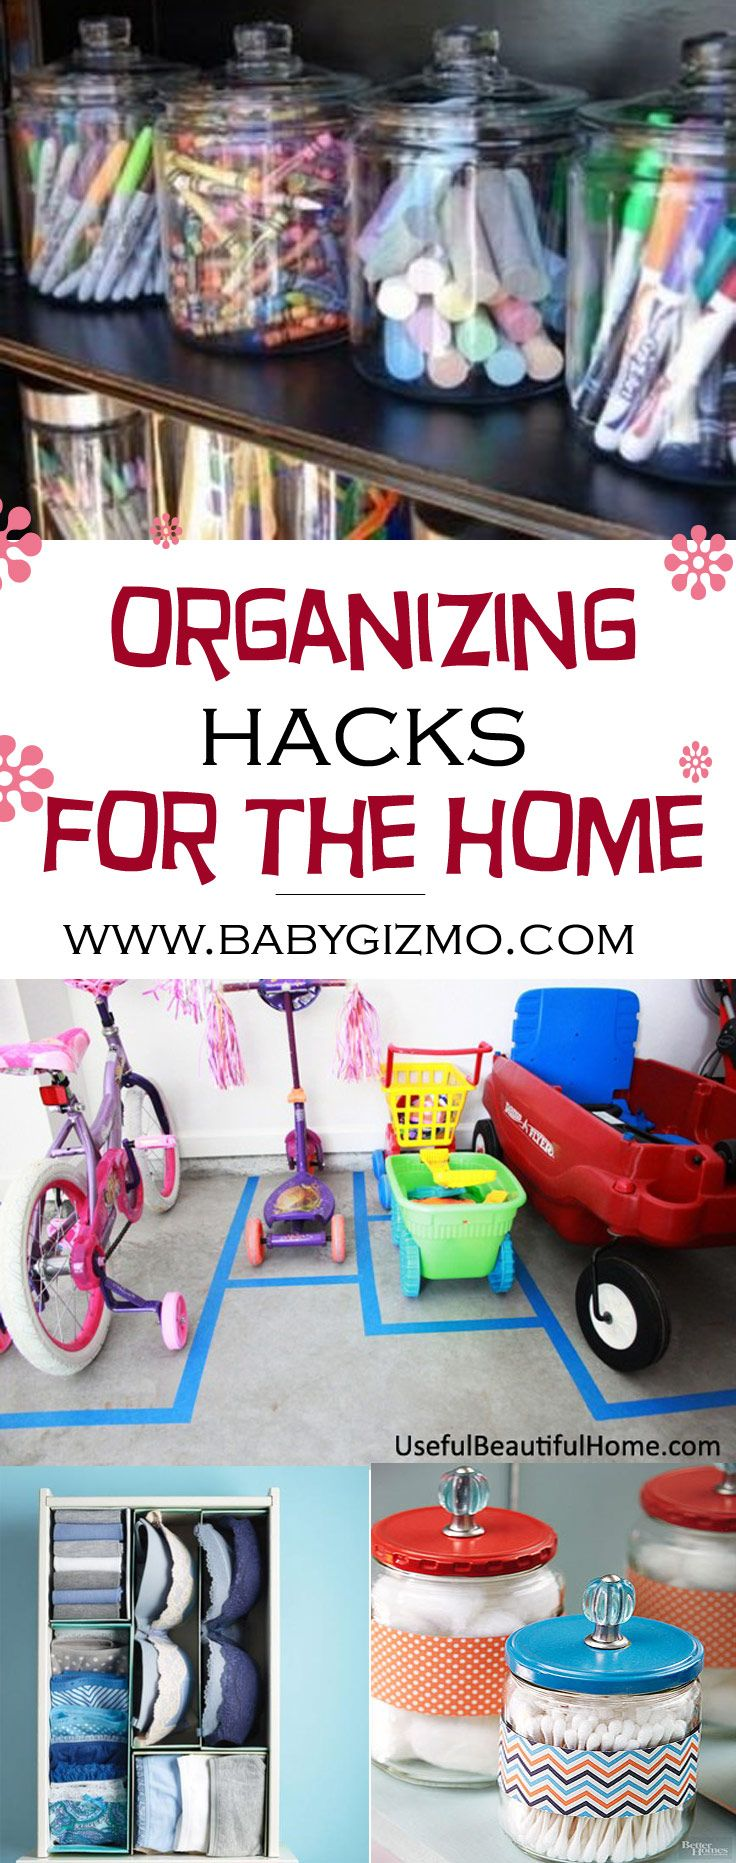 These organizing hacks for the home are great! So many ideas! #organization #hacks #mom hack